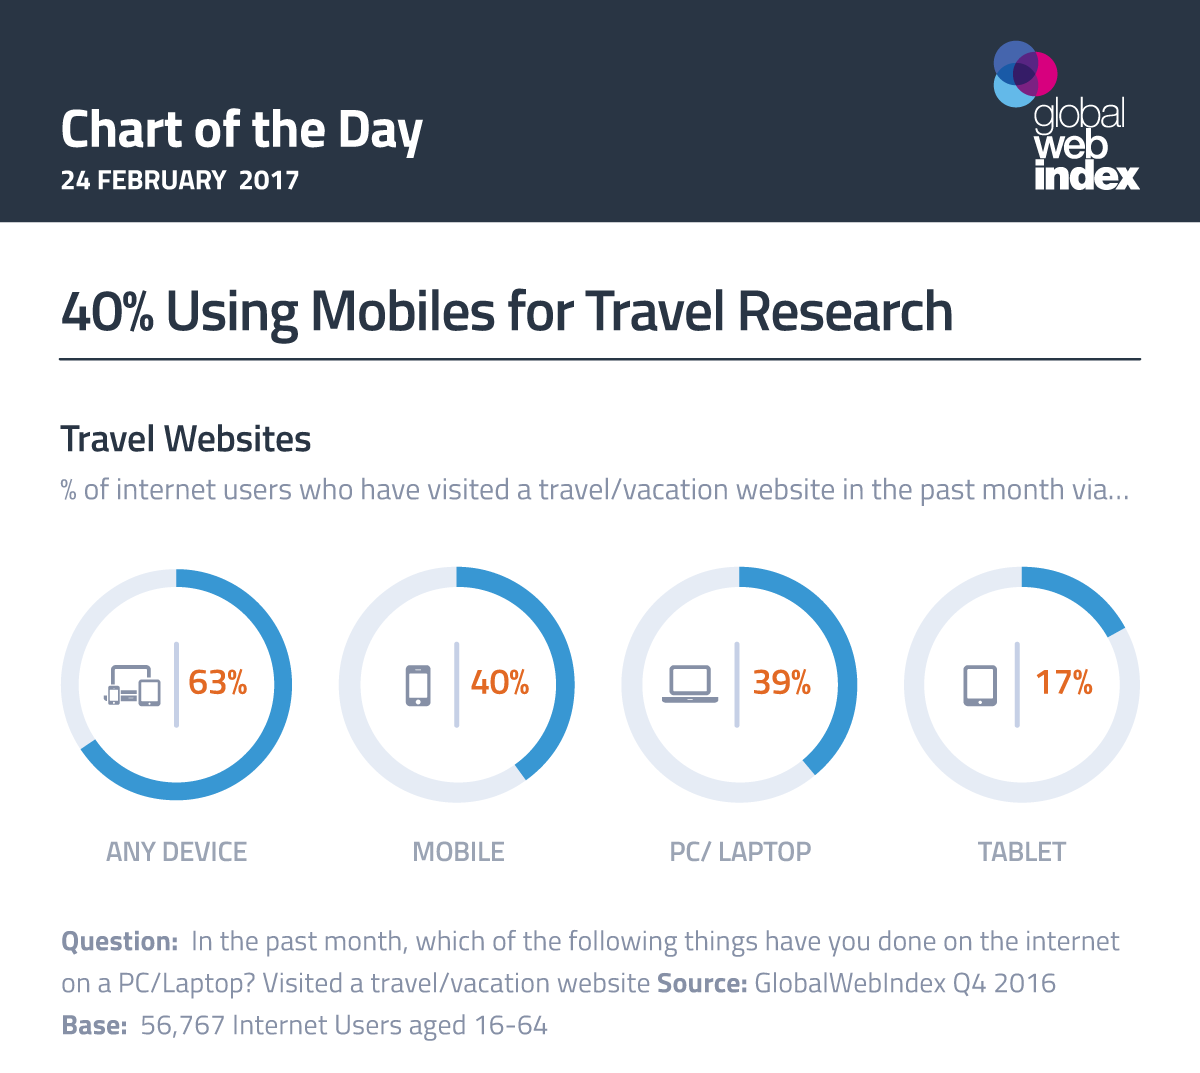 40% Using Mobiles for Travel Research